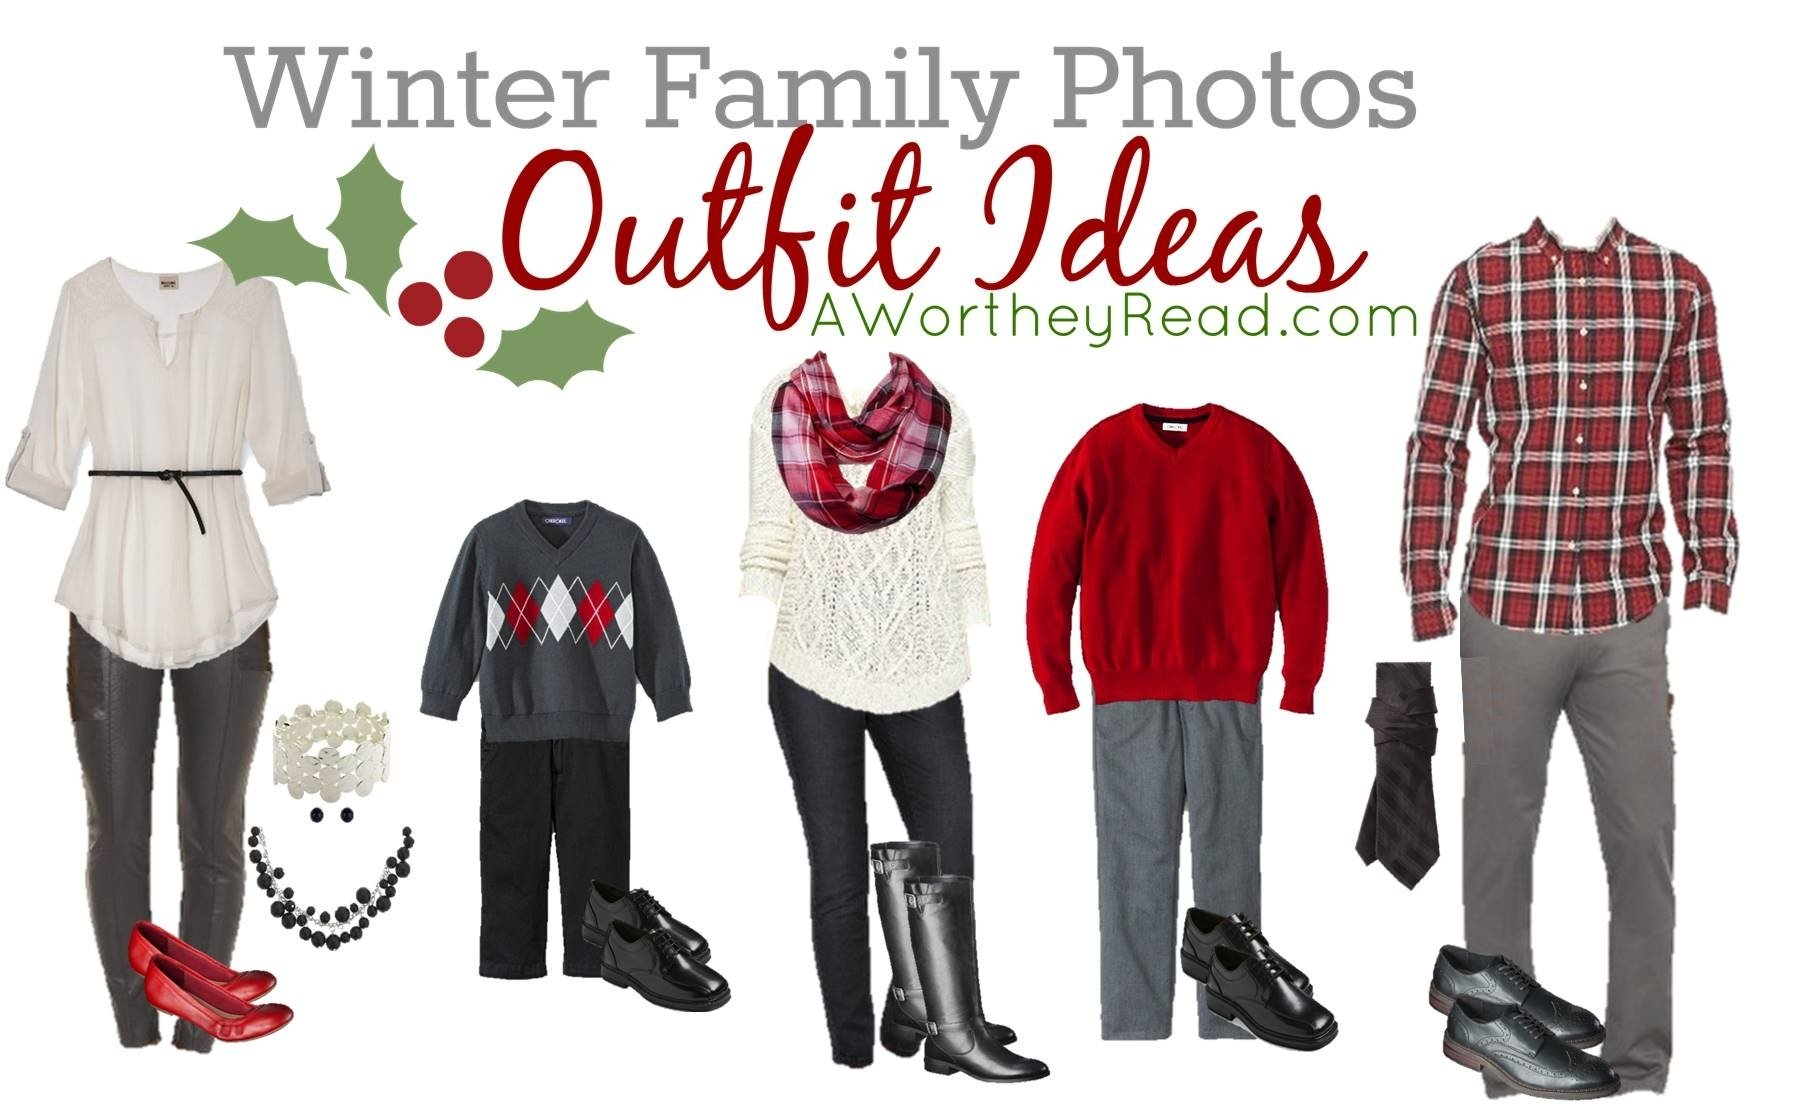 10 Most Popular Family Christmas Picture Outfit Ideas family photo outfit ideas red white black fall family photos 1